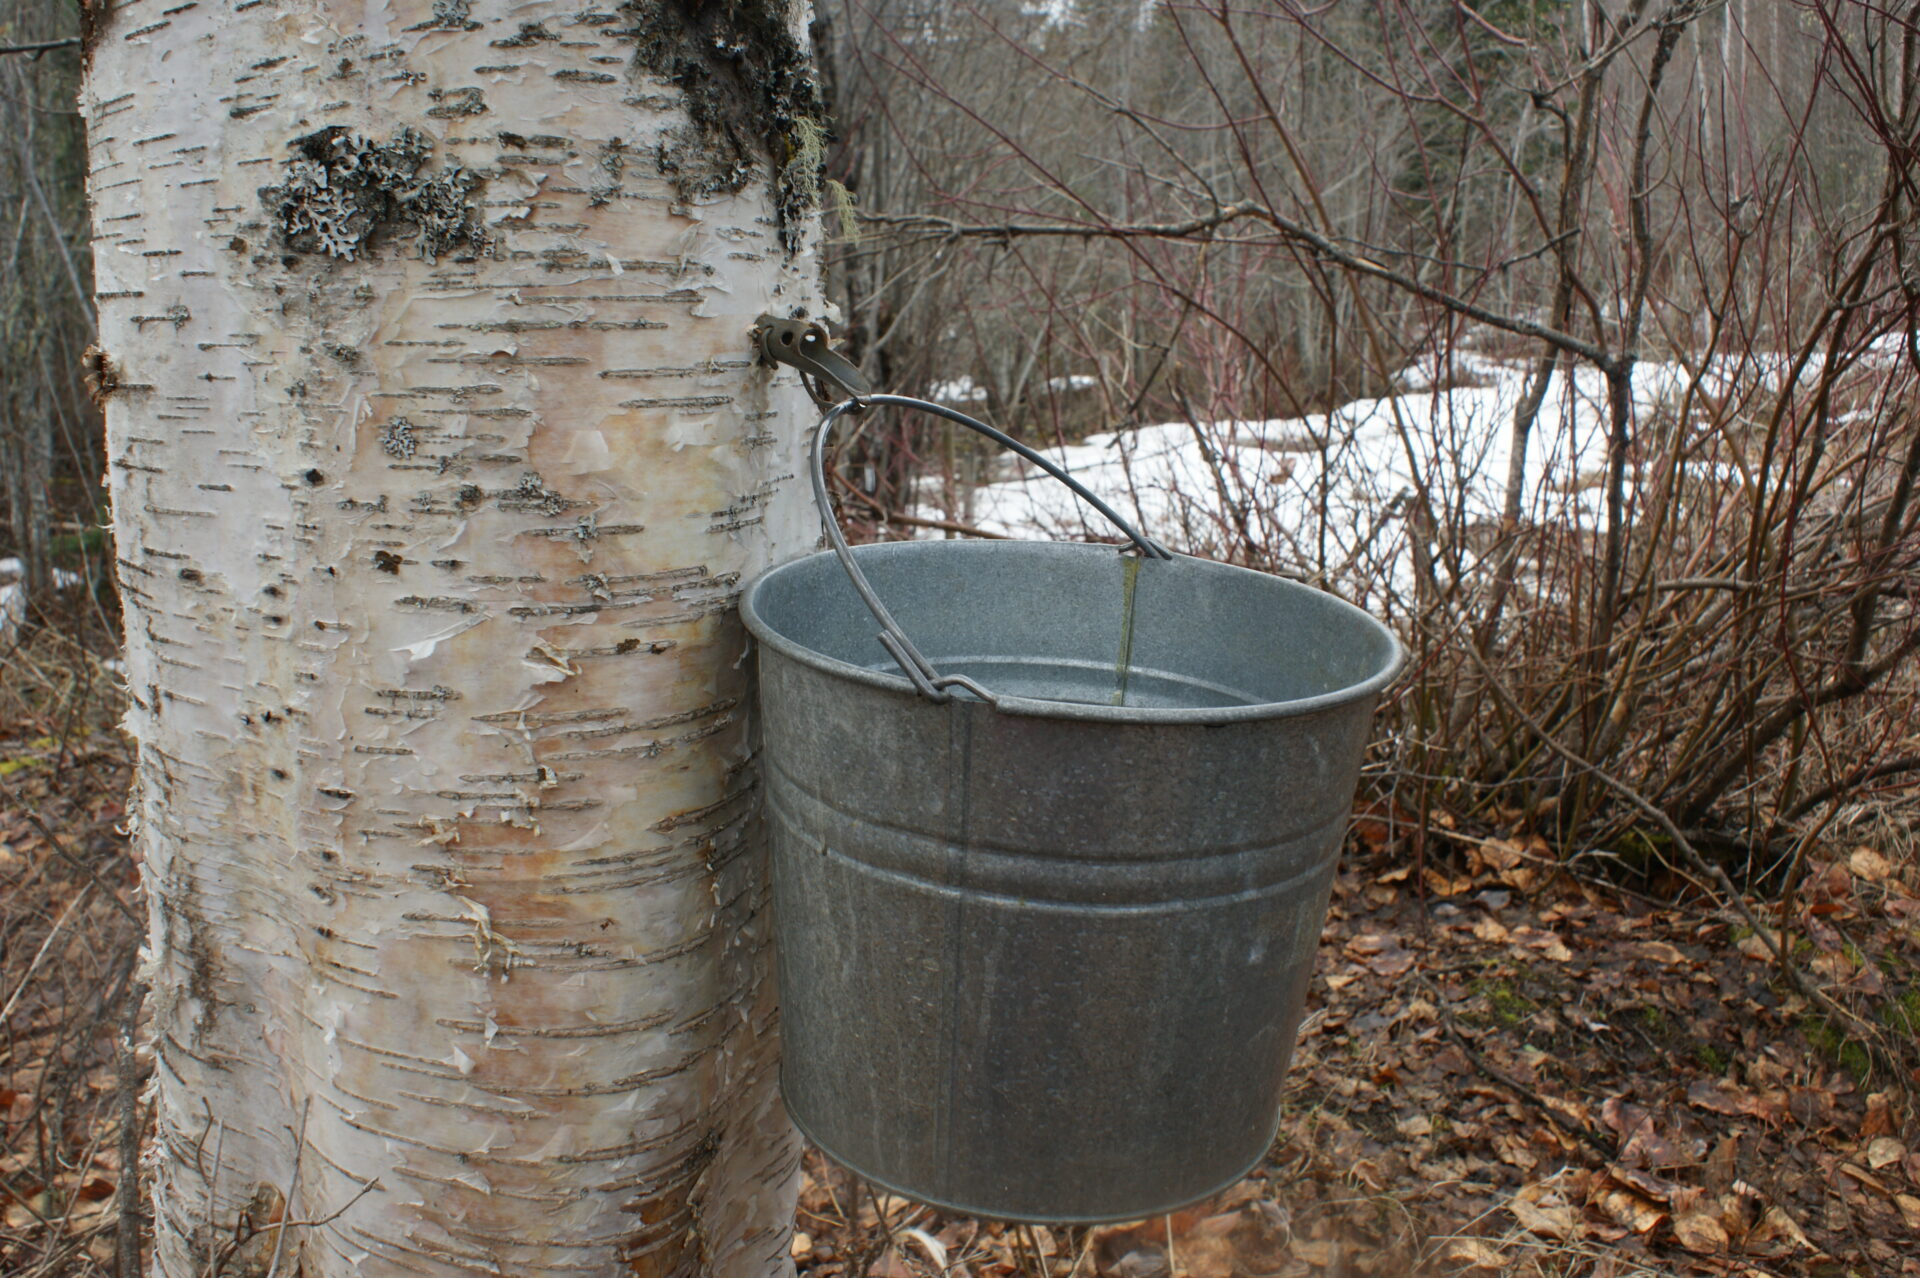 A pail is hung on the tapped birch tree, to collect the dripping sap.